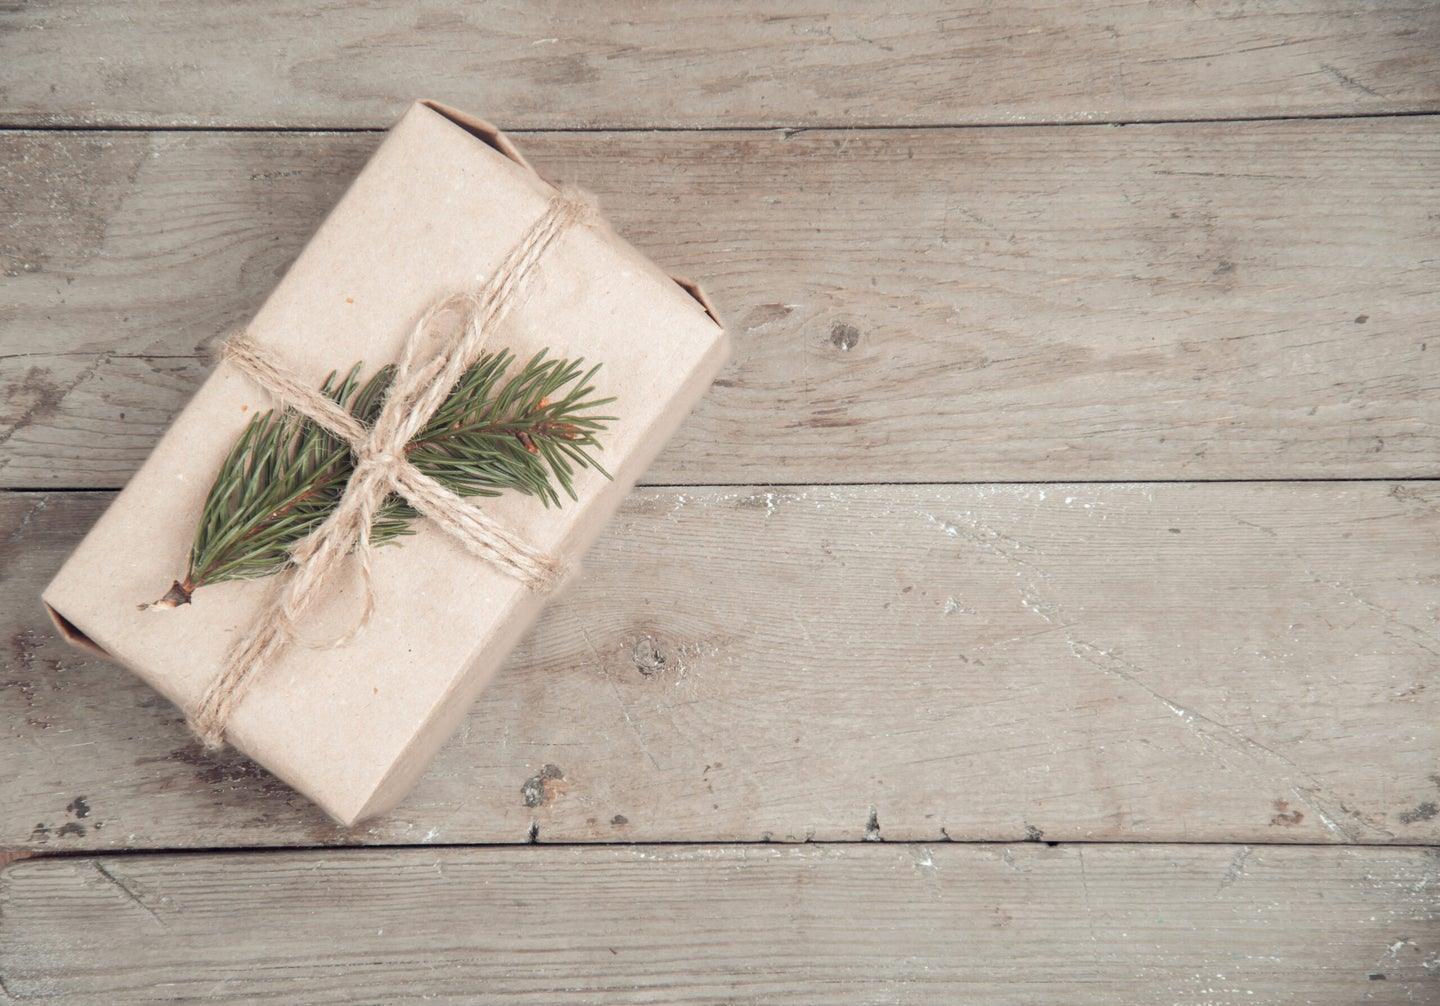 a gift wrapped in brown paper and leaves